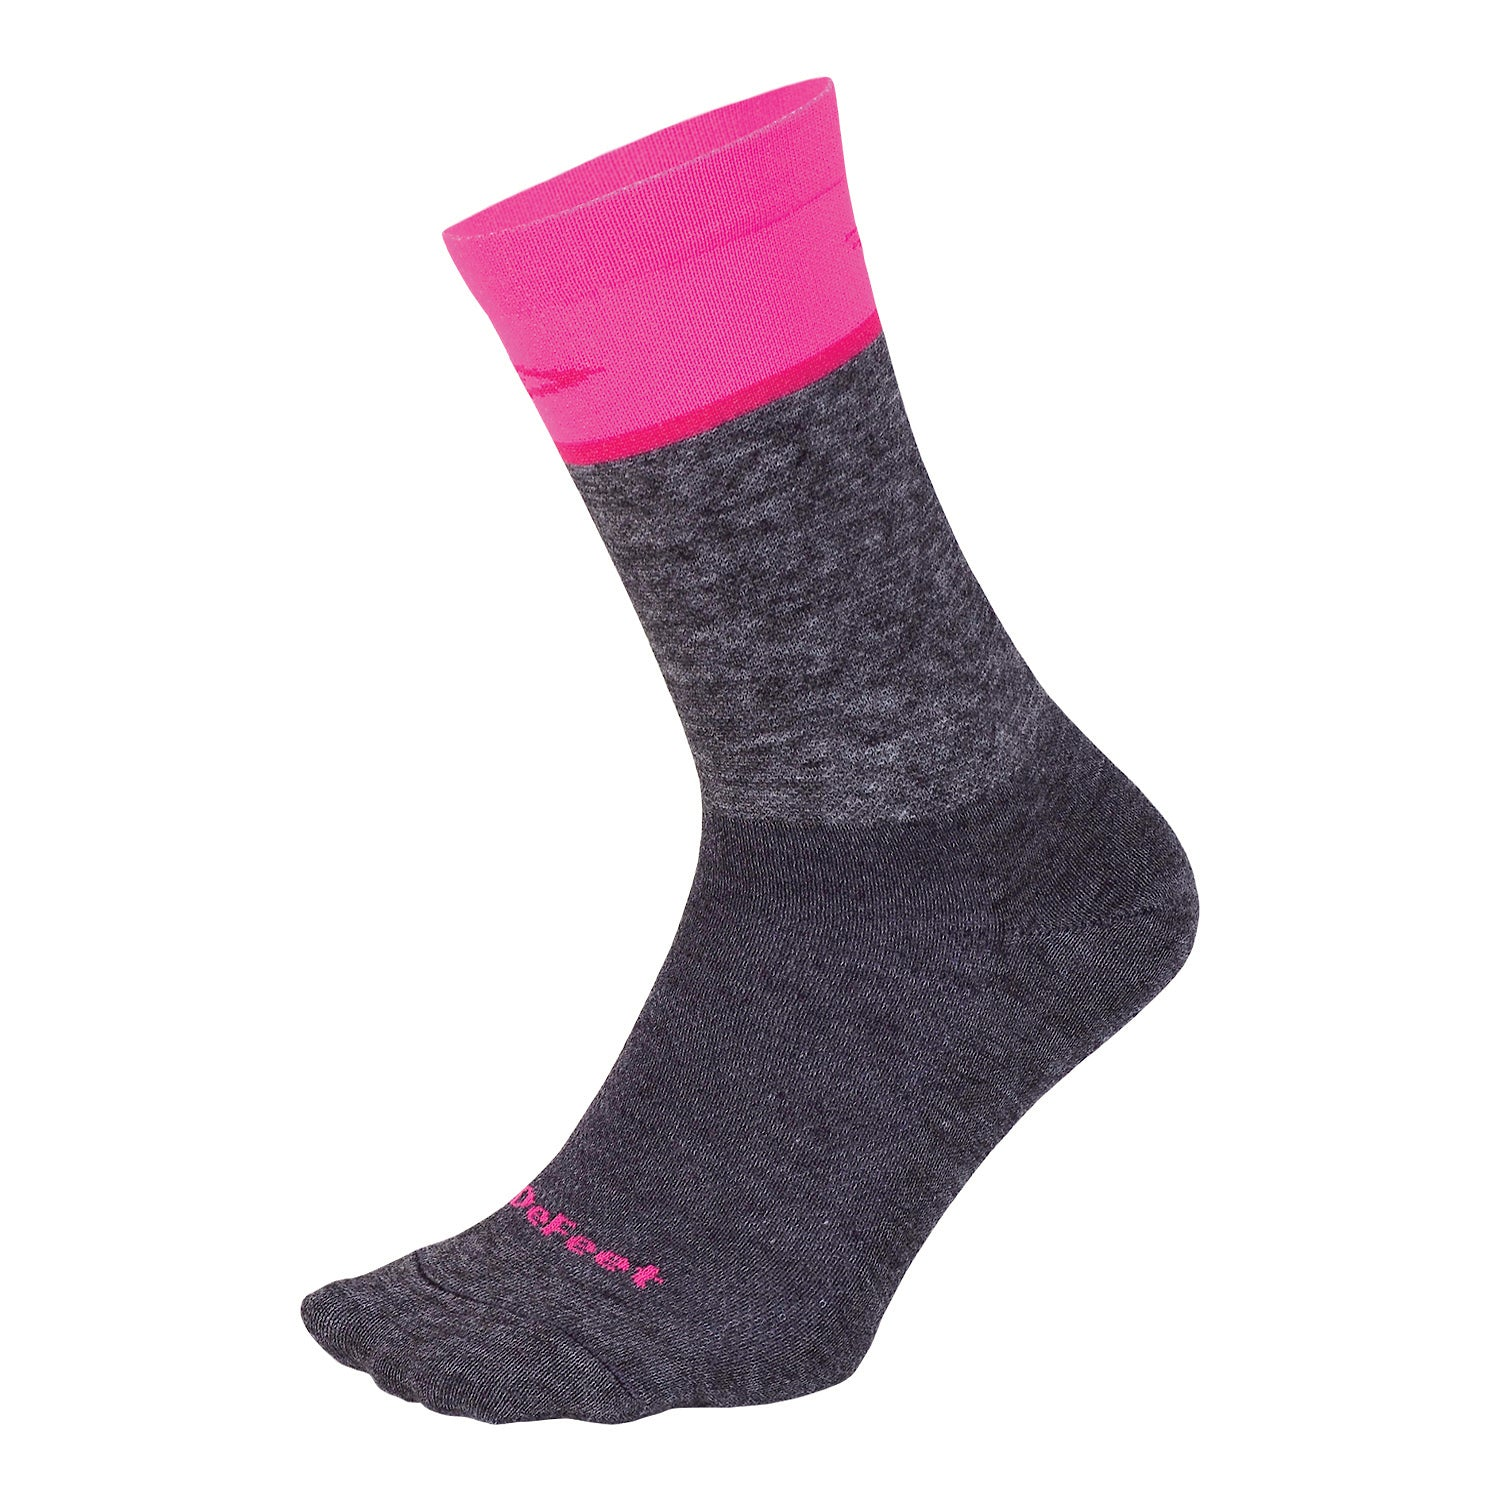 "Wooleator Comp 6"" Team DeFeet Gravel Grey/Neon Pink"